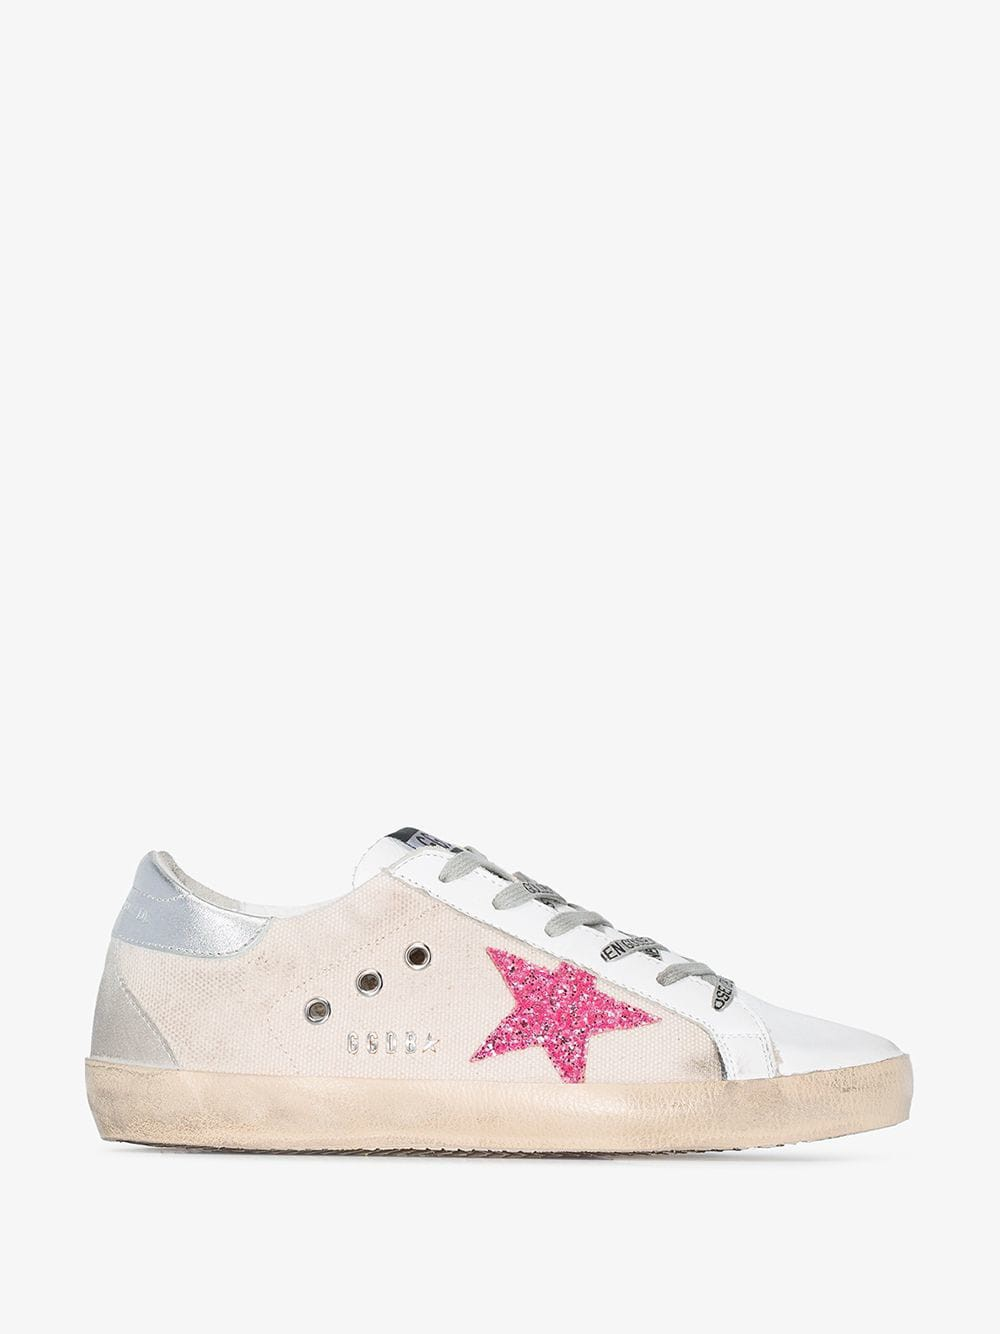 Golden Goose Deluxe Brand Golden Goose White and pink Superstar canvas sneakers